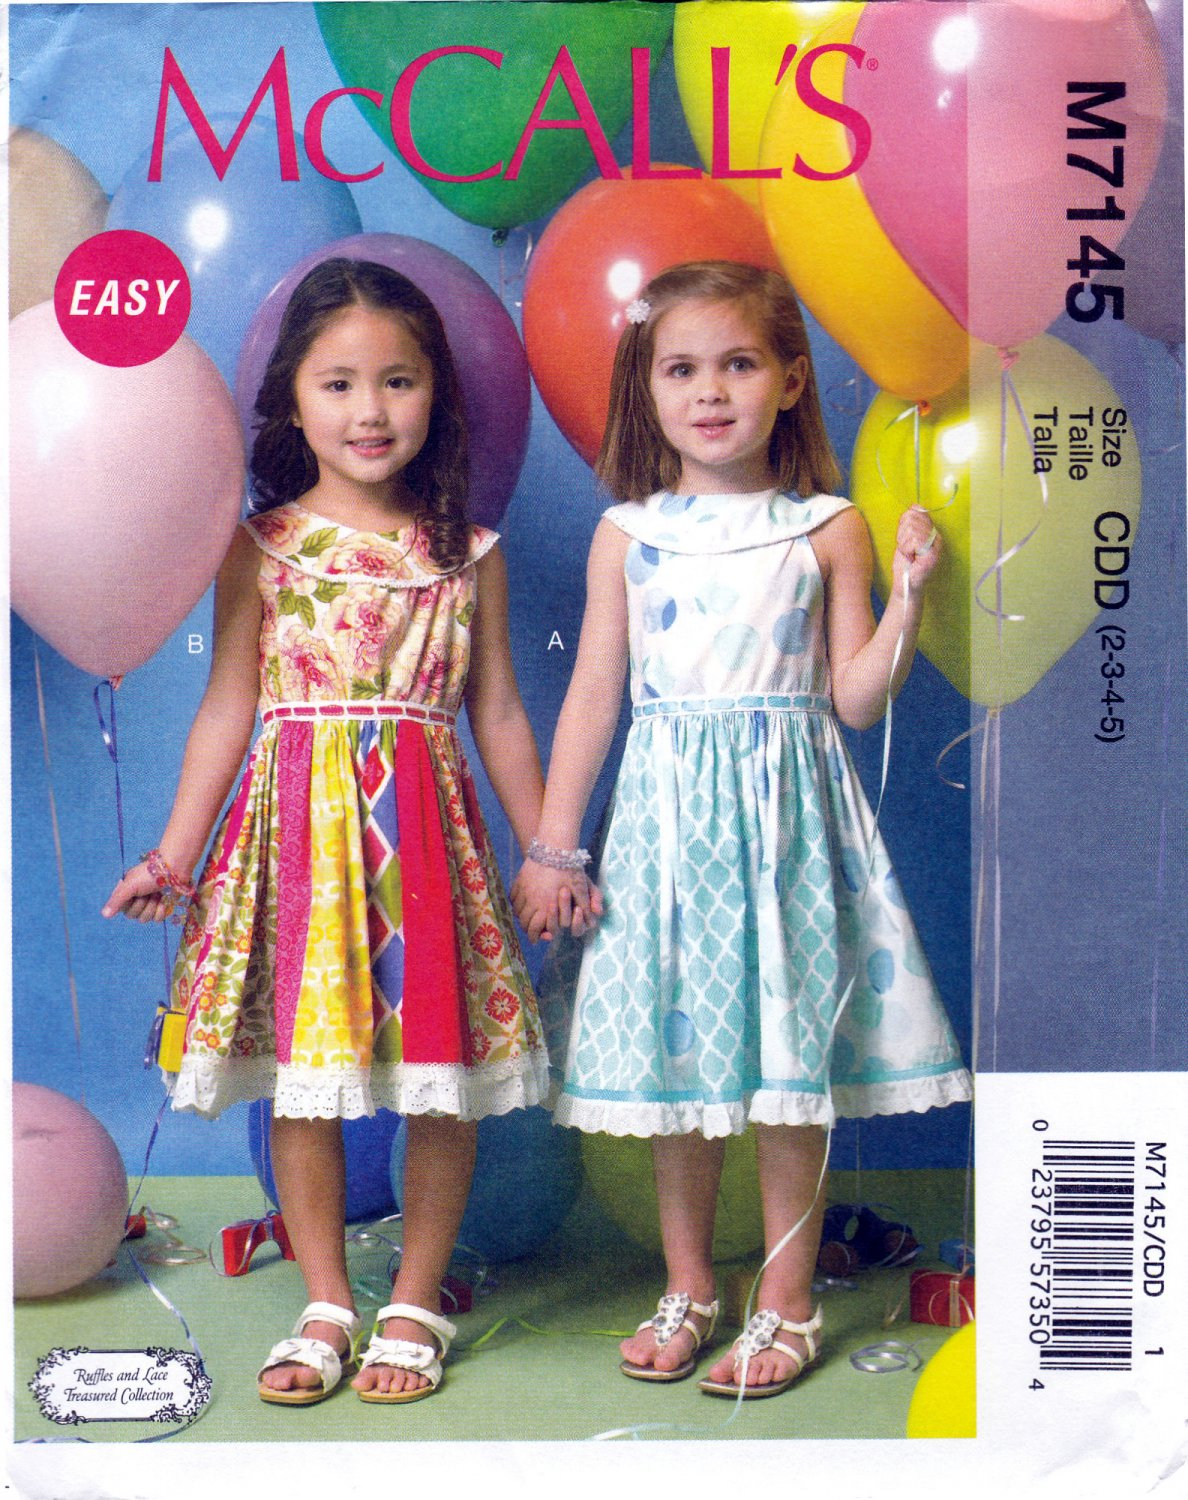 McCall's 7145 M7145 Girls Pullover Dress Sewing Pattern Sleeveless Childrens Kid Sizes 2-3-4-5 Easy